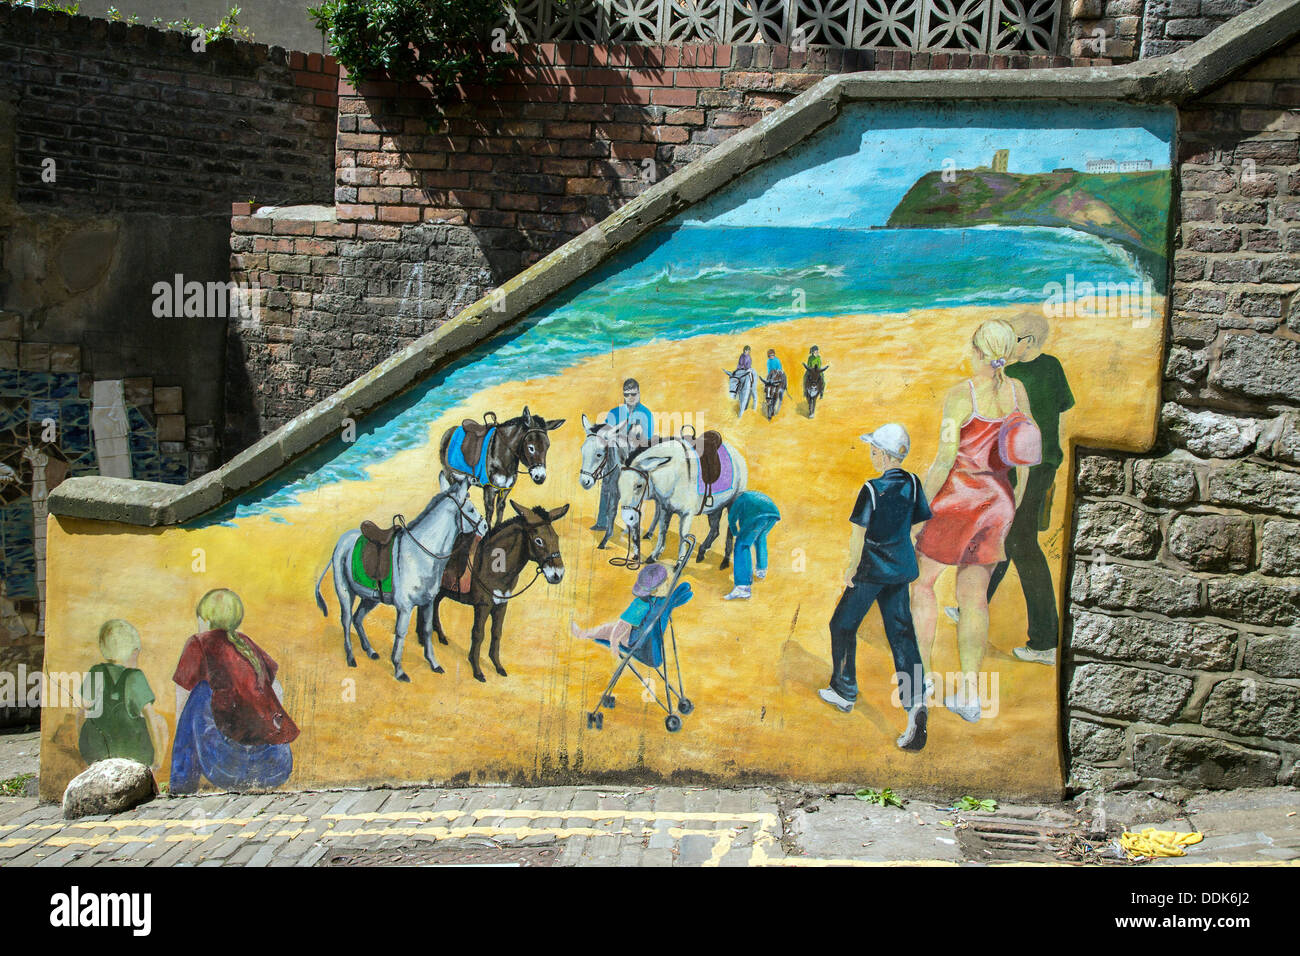 Wall Murals Stock Photos & Wall Murals Stock Images - Alamy